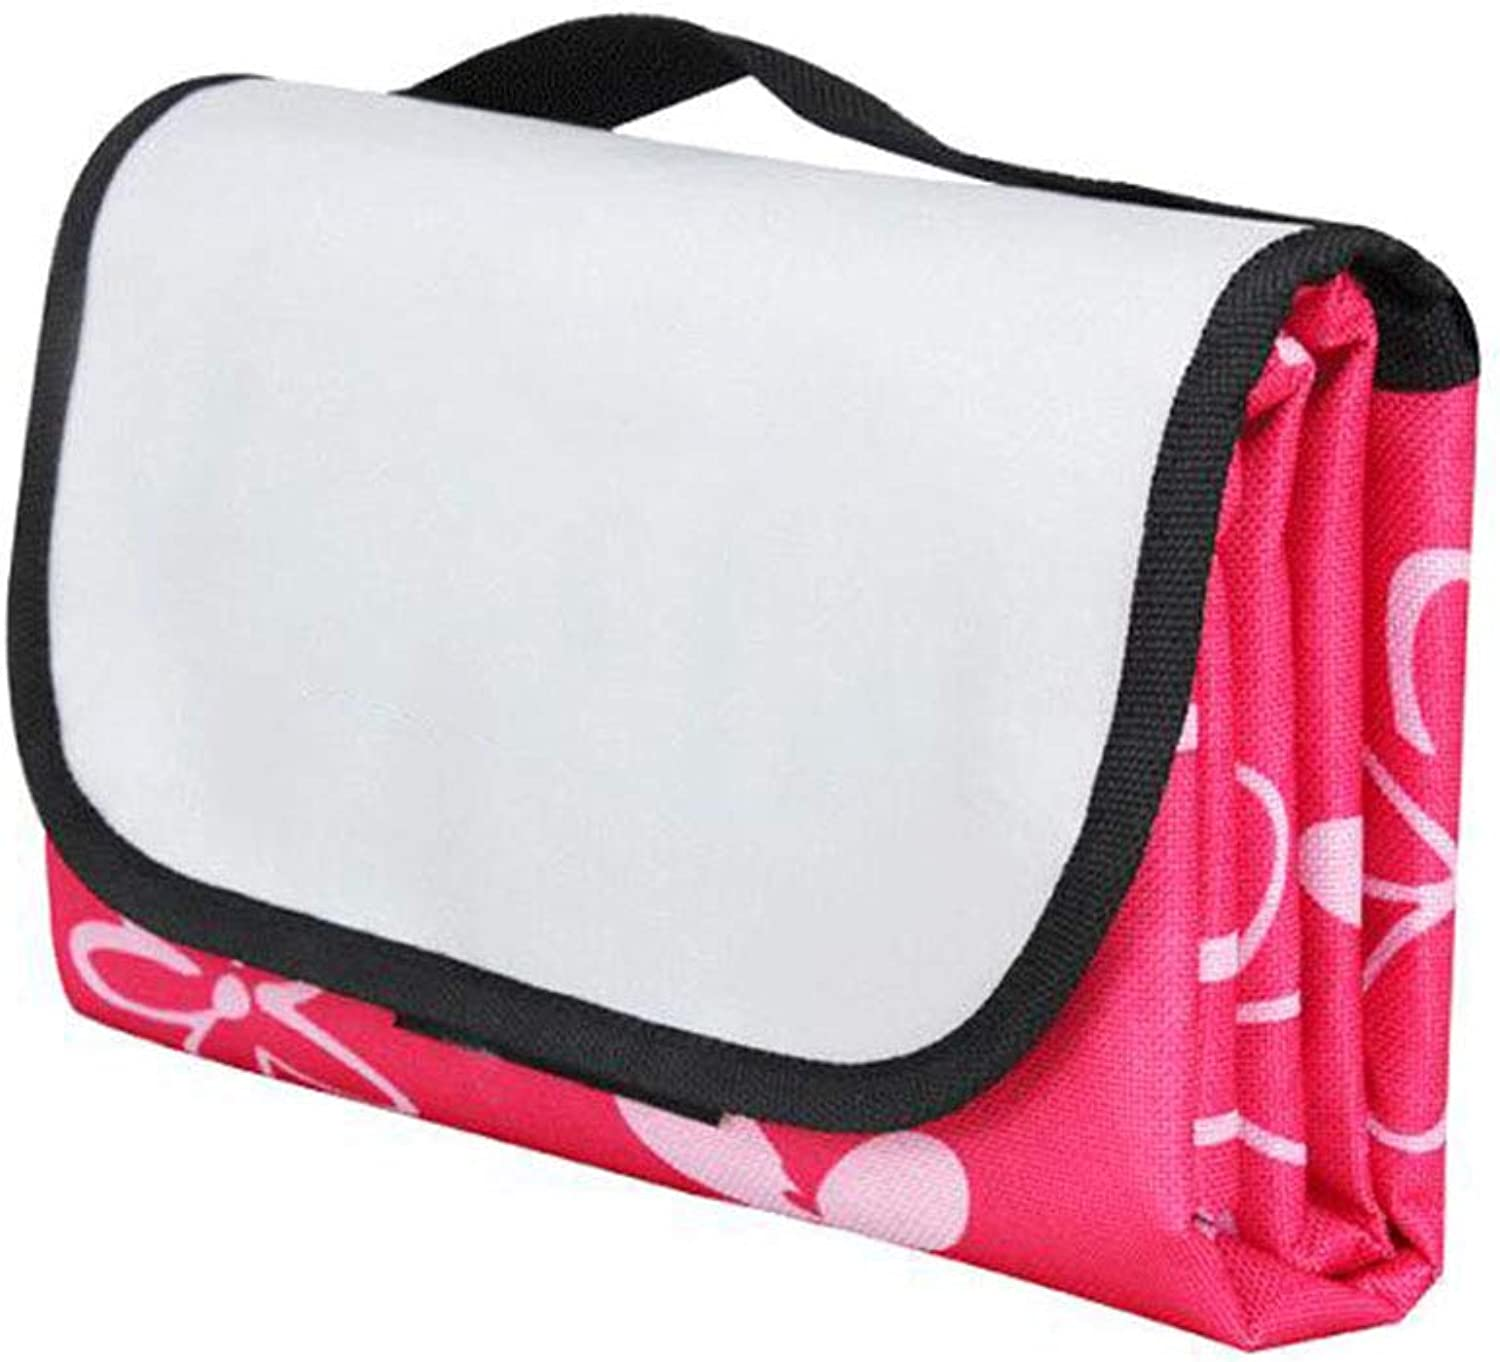 Outdoor Portable Picnic Blanket MoistureProof Waterproof Oxford Cloth Mats Travel Camping Beach Barbecue